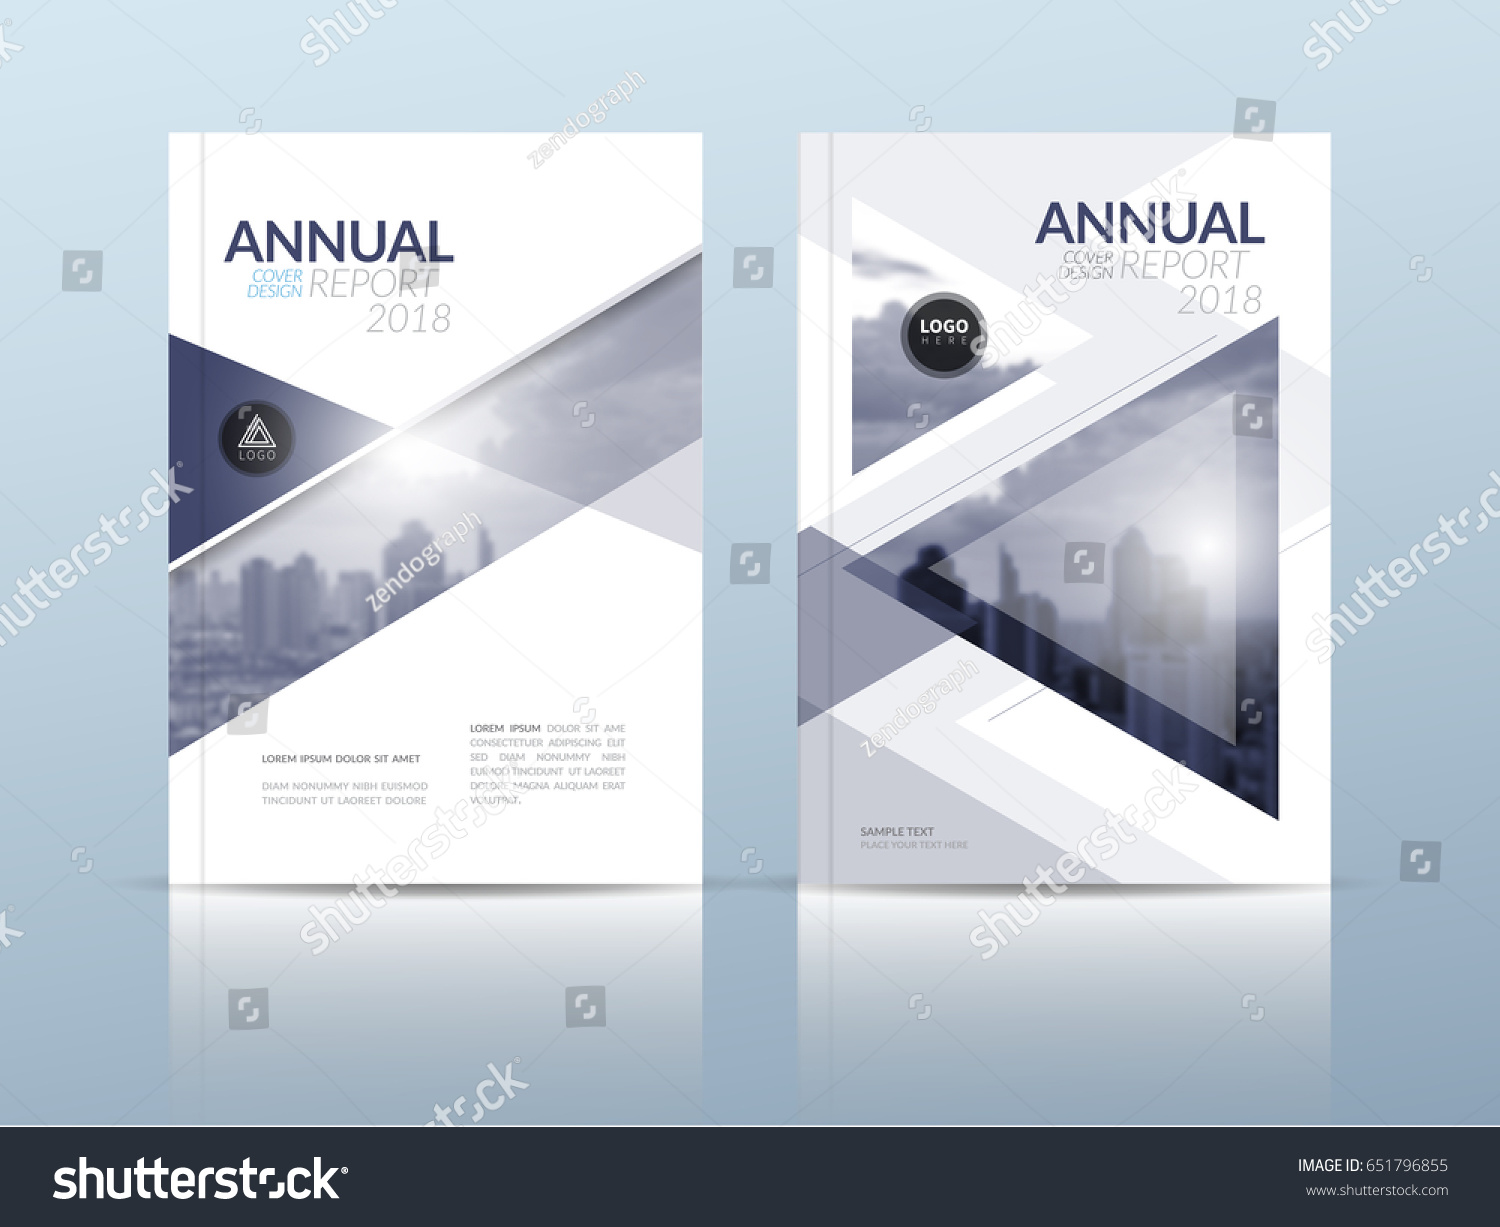 Annual Report Cover Flyer Presentation Brochure Stock Photo Photo - Presentation cover page template